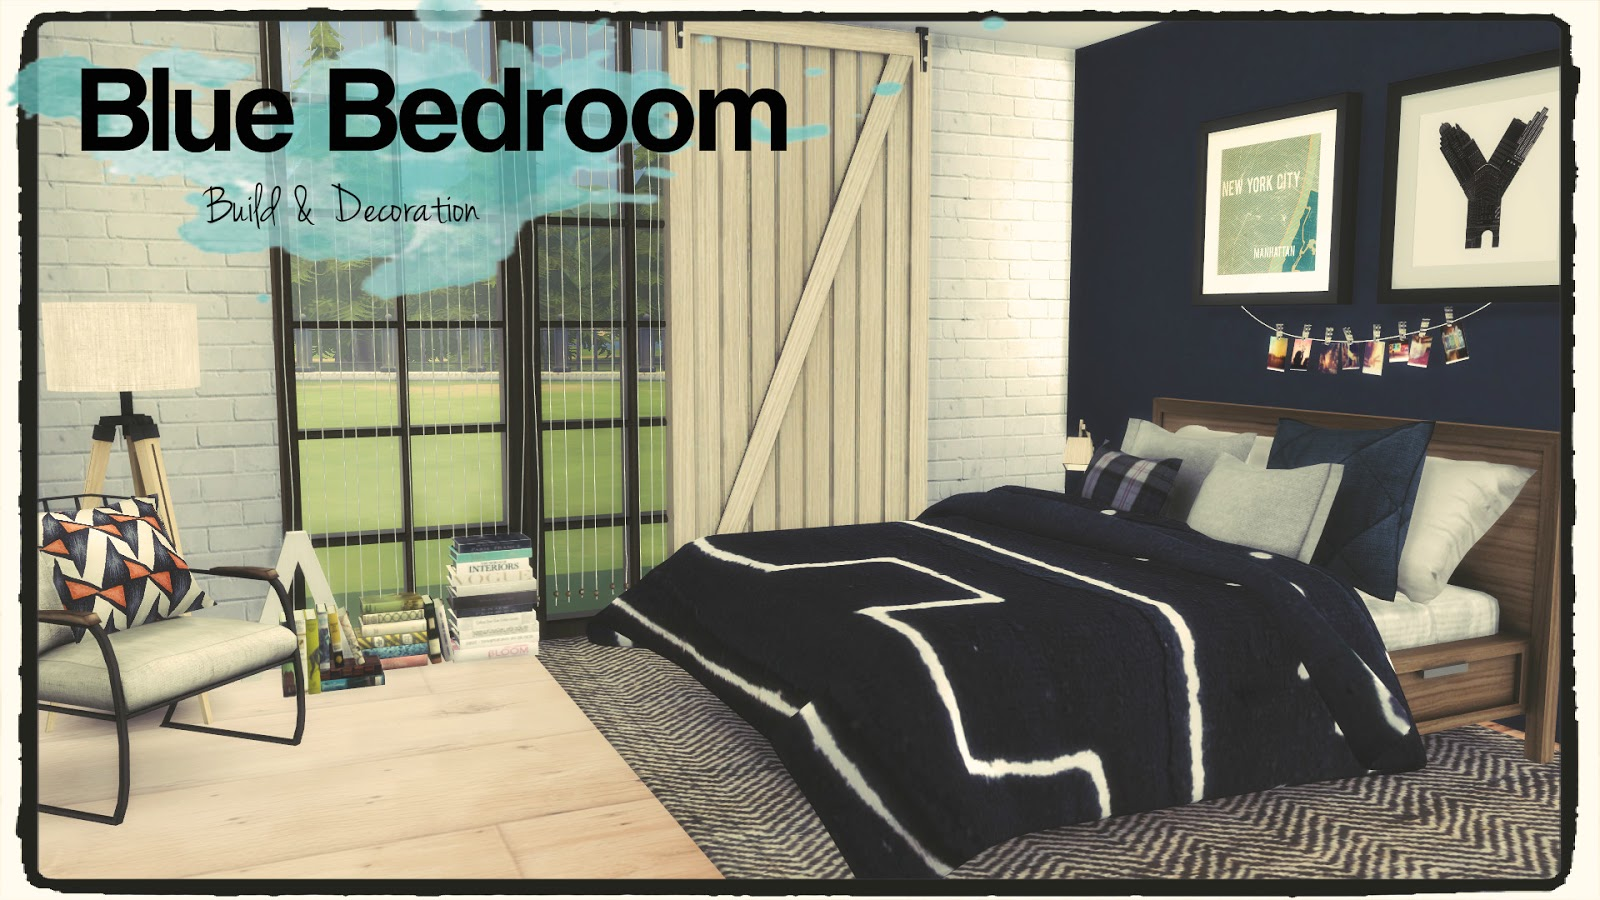 Sims 4 Blue Bedroom Dinha